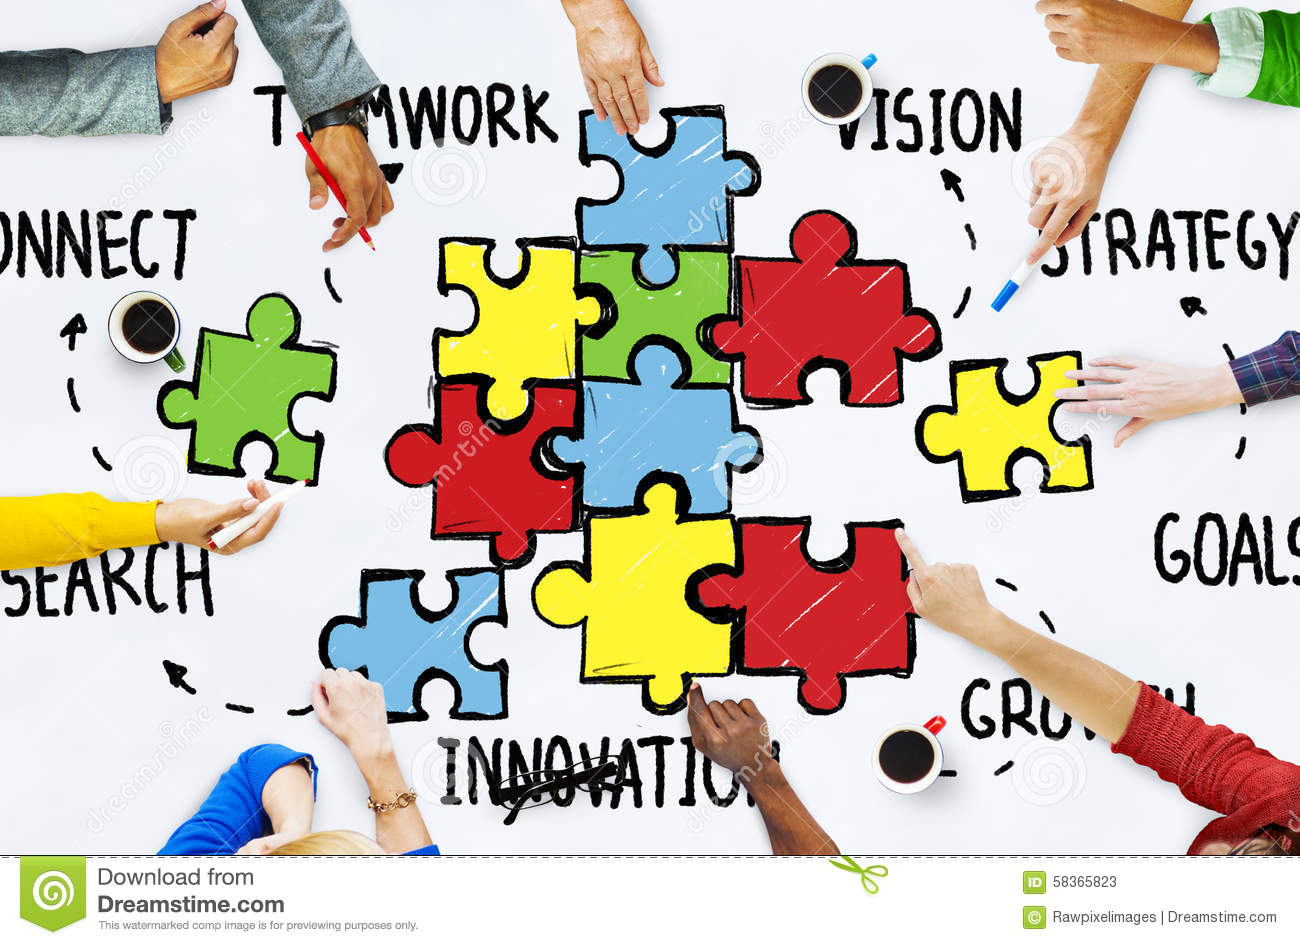 the strategy of teamwork As dave kerpen strategic consulting, i could make my own hours, determine my own success teamwork is the ability to work together toward a common vision.